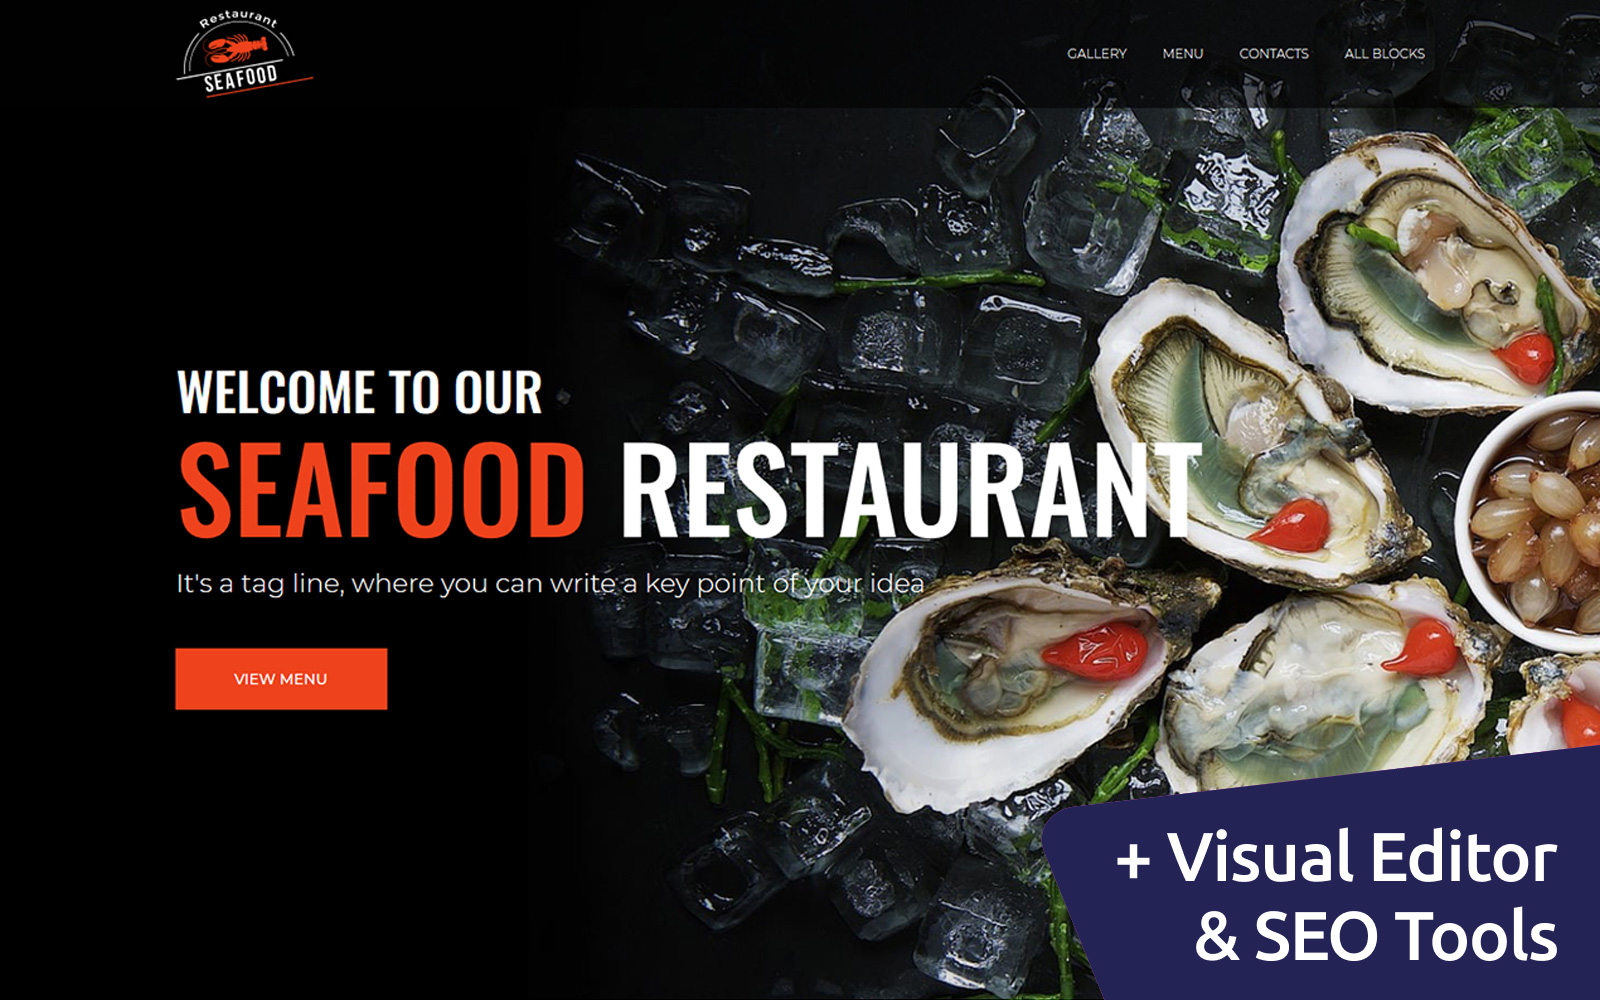 Seafood - Restaurant Landing Page Template